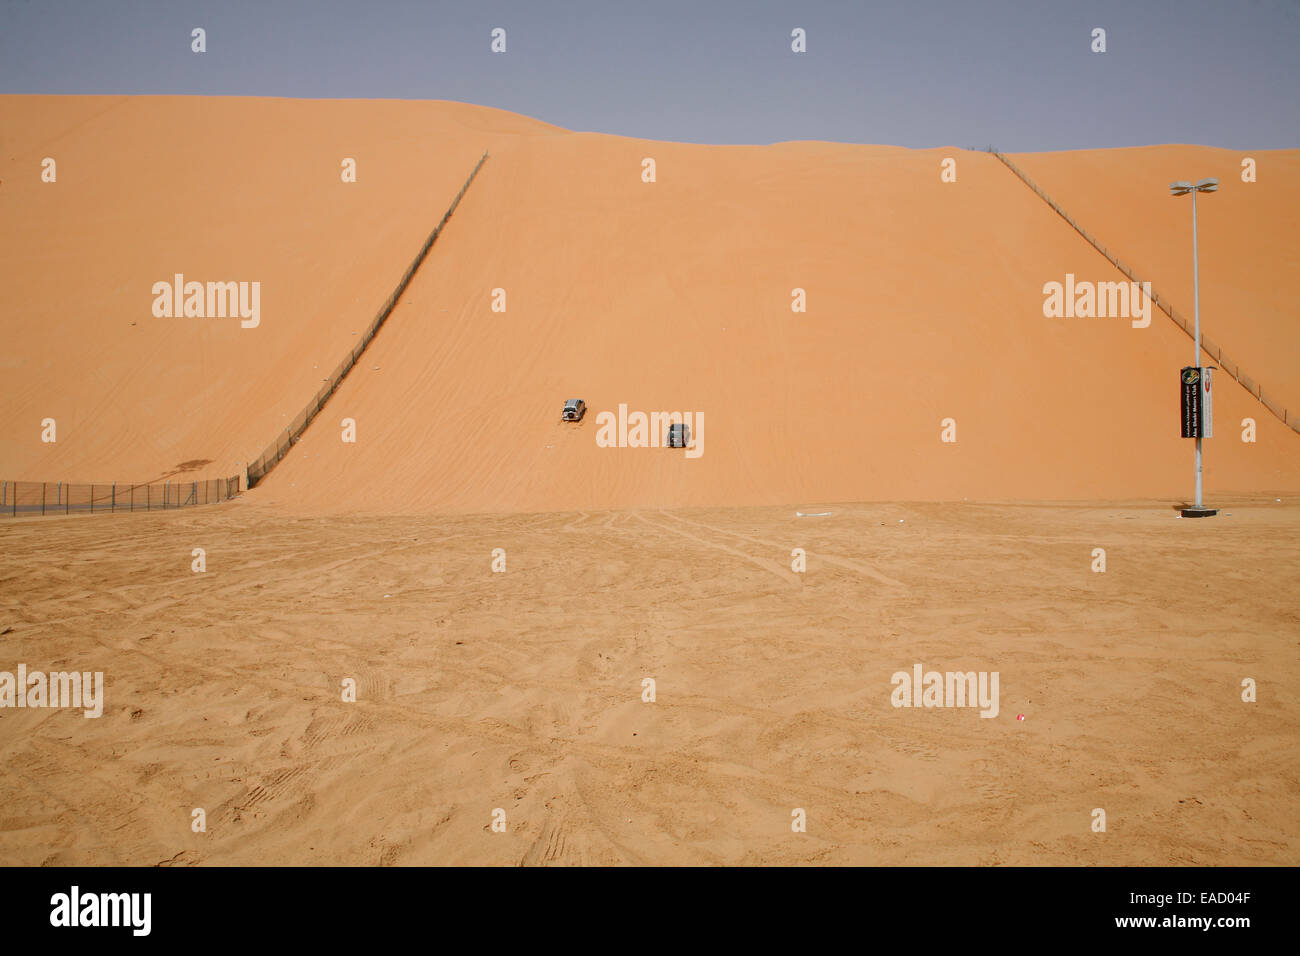 Motorsport at Devils Dune, Abu Dhabi, Emirate of Abu Dhabi, United Arab Emirates - Stock Image